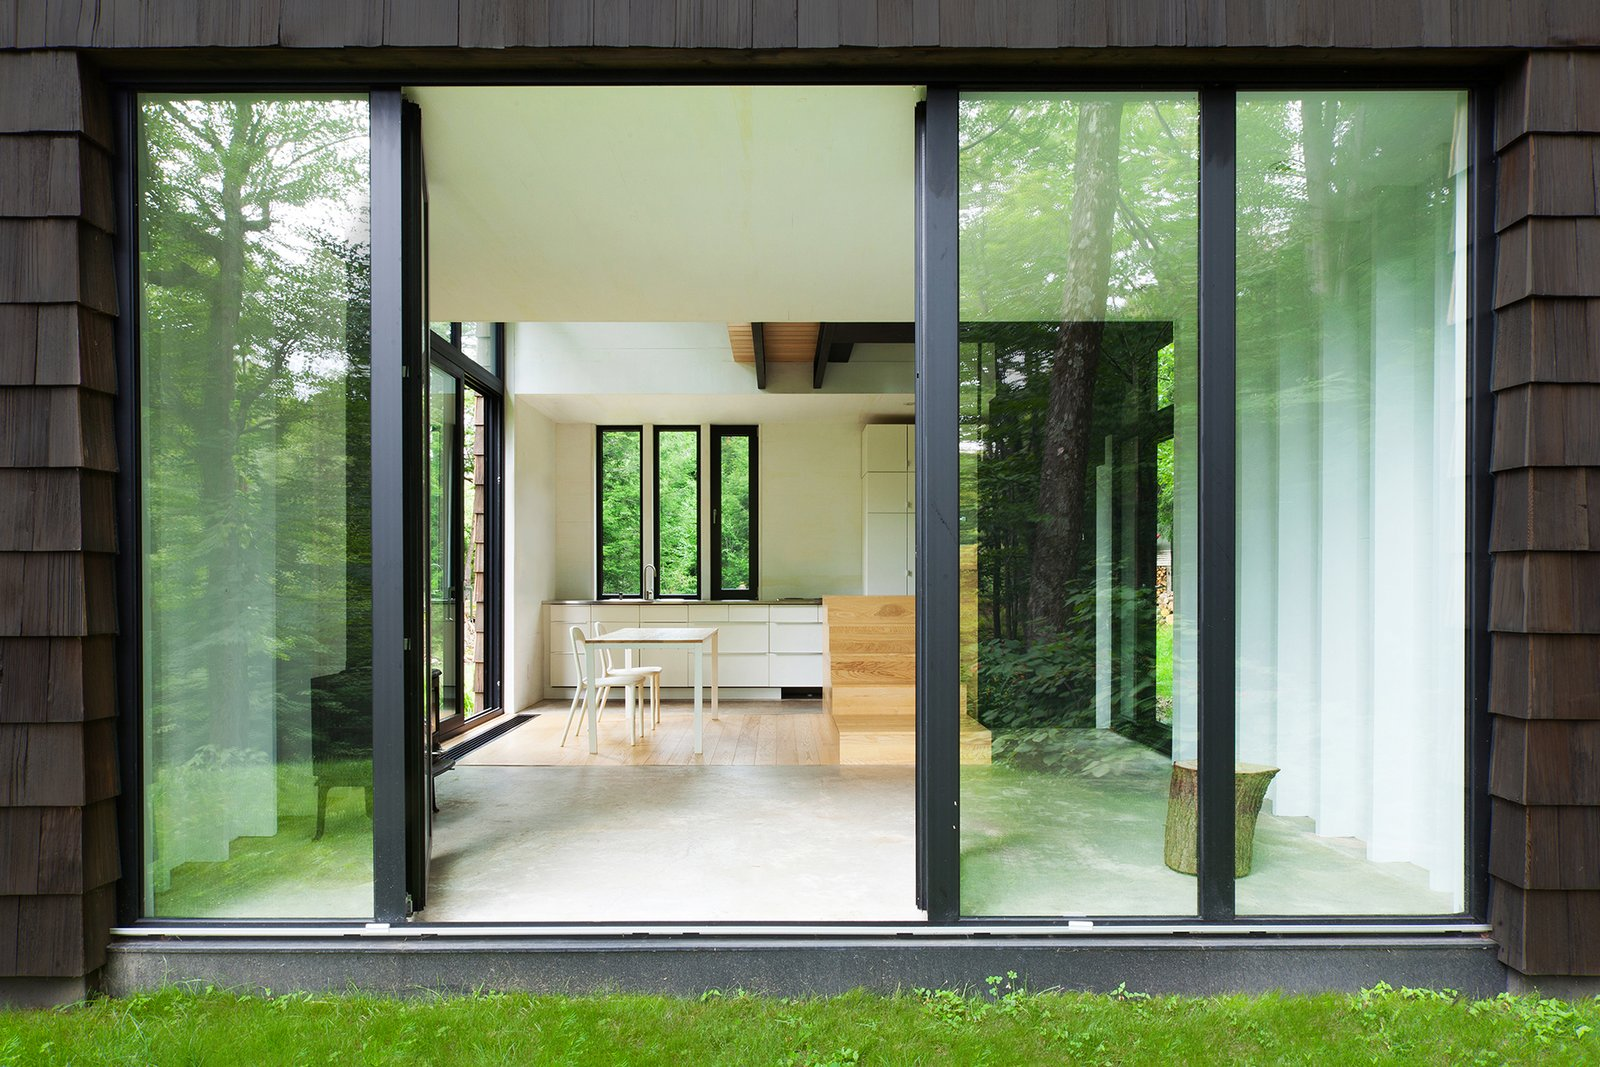 The interior is spare and modern. The cabinets and chairs are from IKEA. So is the table, which has a DIY laminated-ash top. Suzanne Rochon bought the cabin in 2002 and spent a decade fixing it up before calling on YH2 Architecture. In 2005, she added five acres, doubling the property.